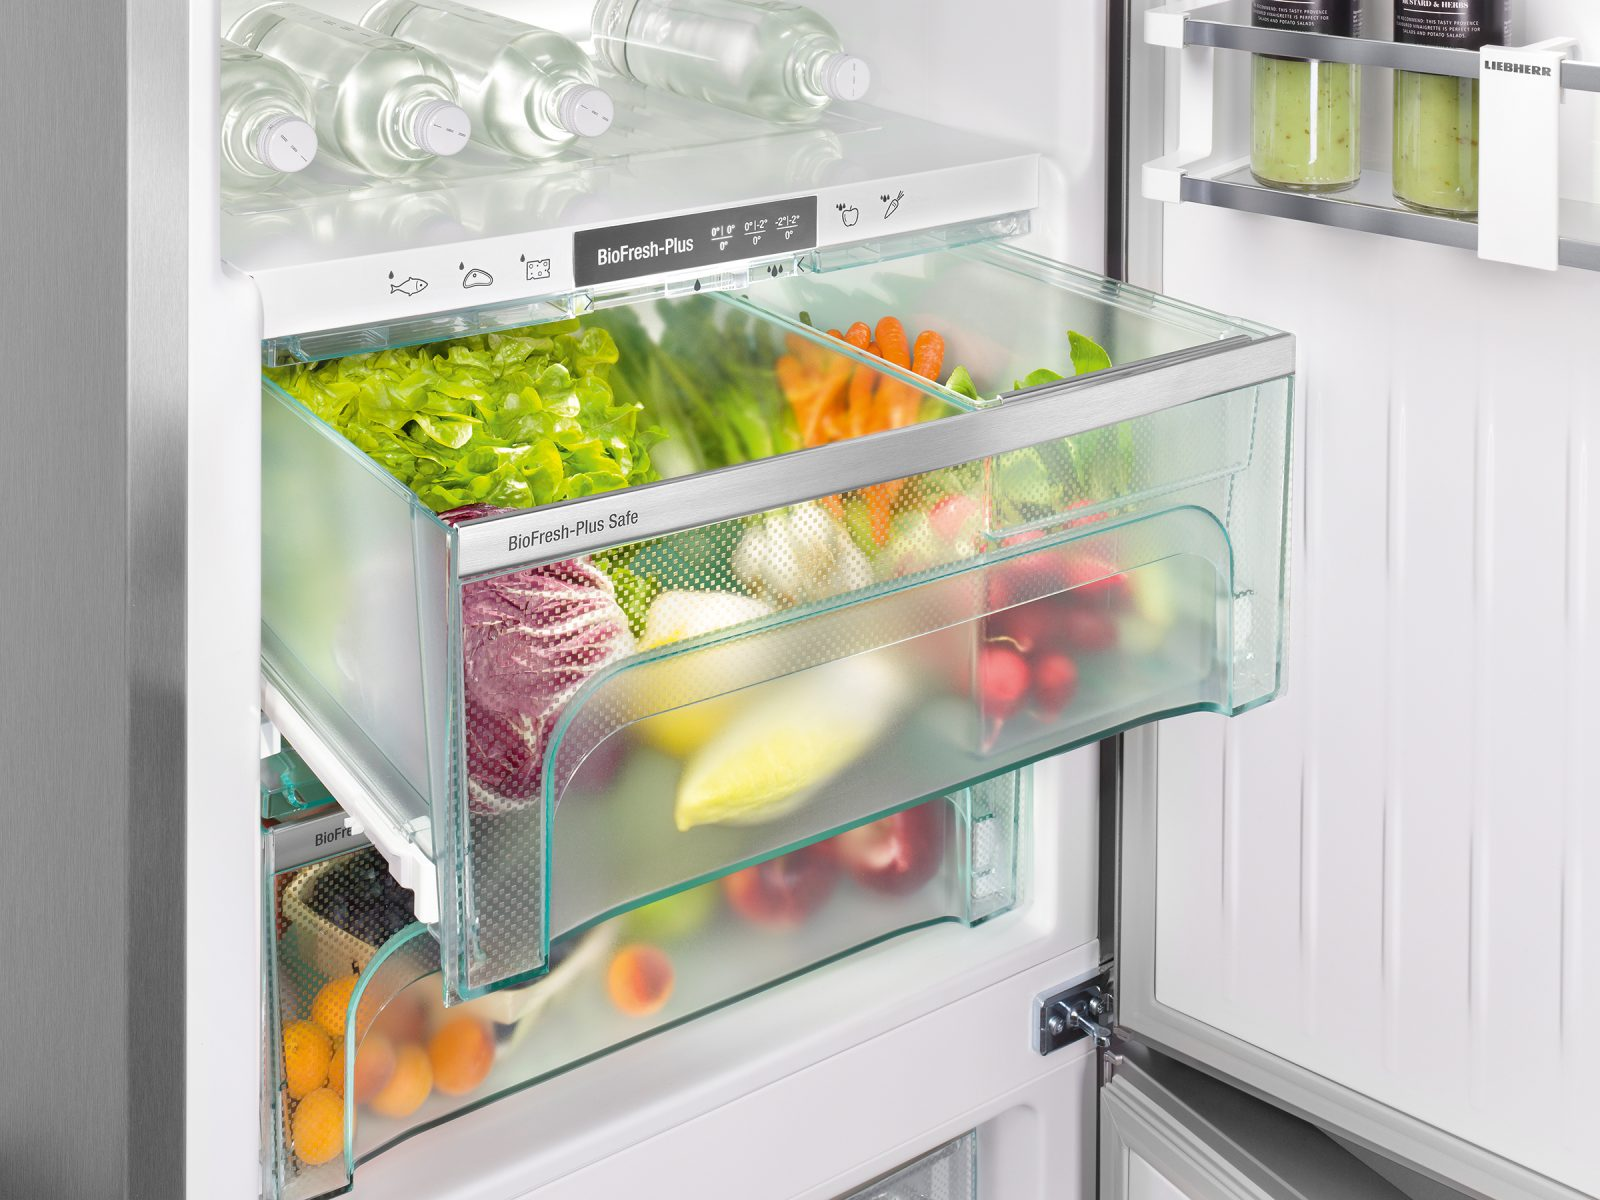 Preserve groceries longer with Liebherr's patented BioFresh technology